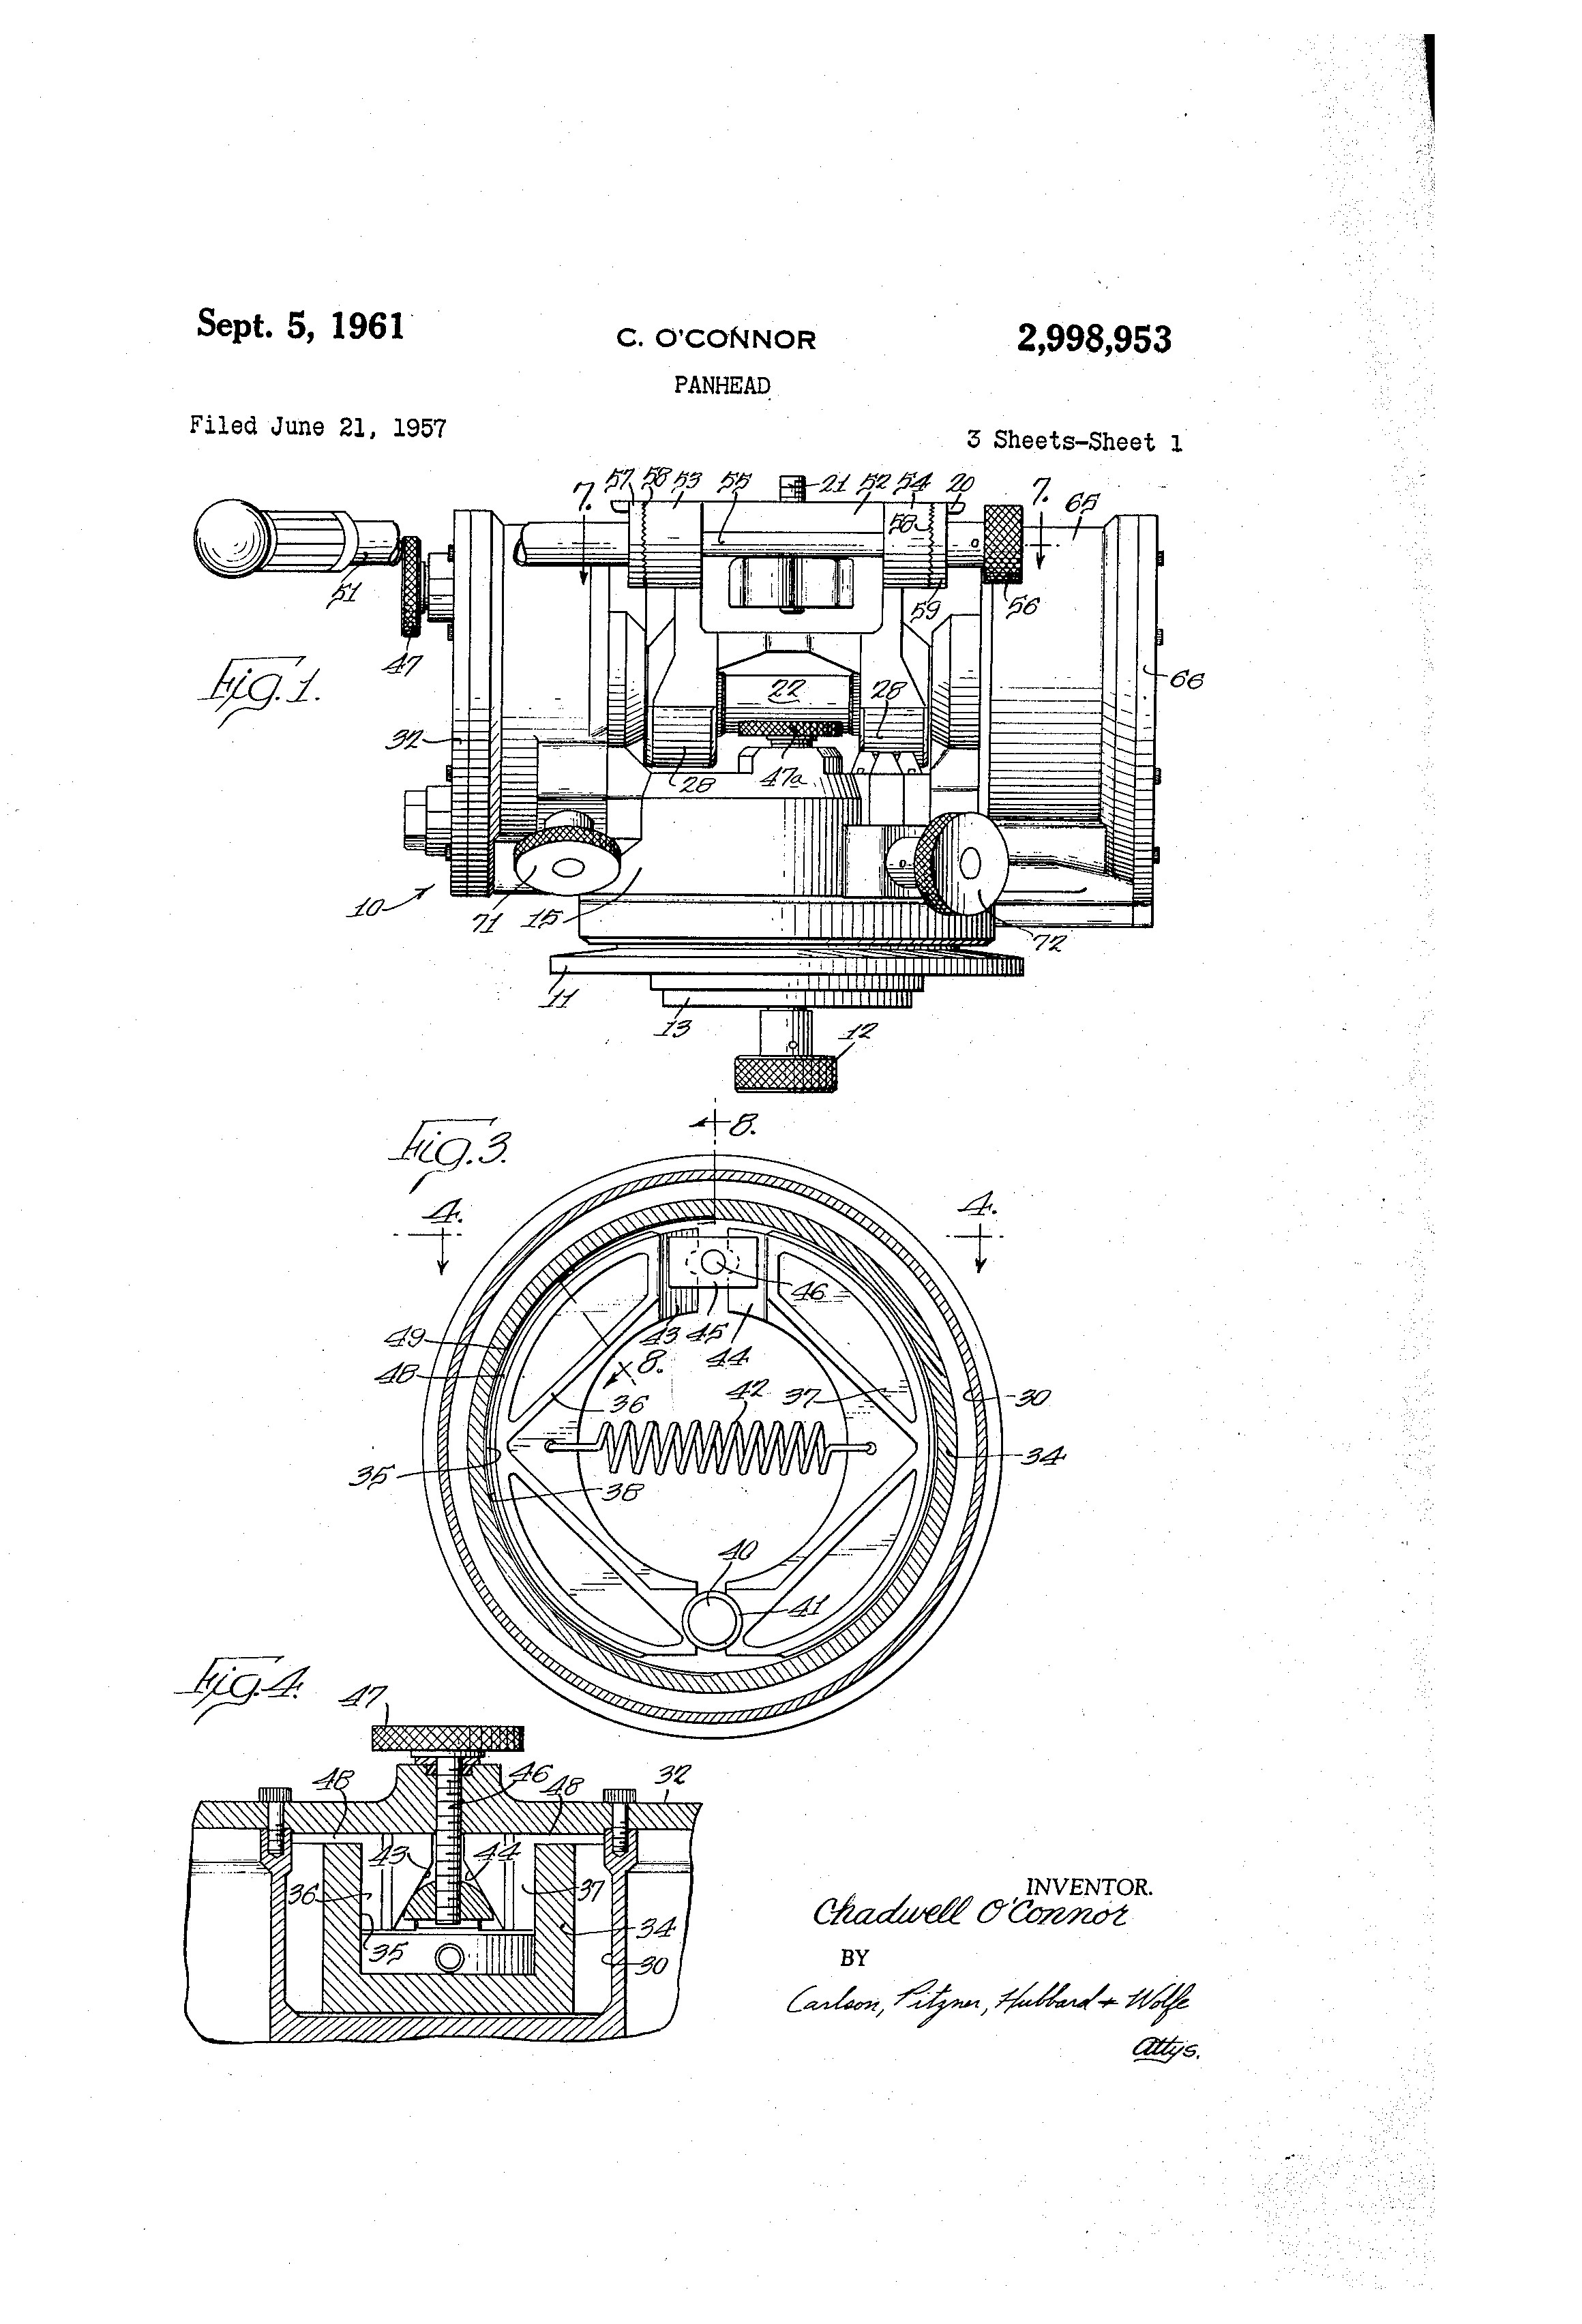 Harley Engine Diagram Also Honda Motorcycle Wiring Diagrams Cb Bobber Image Result For Knucklehead Art Hd Pinterest Of